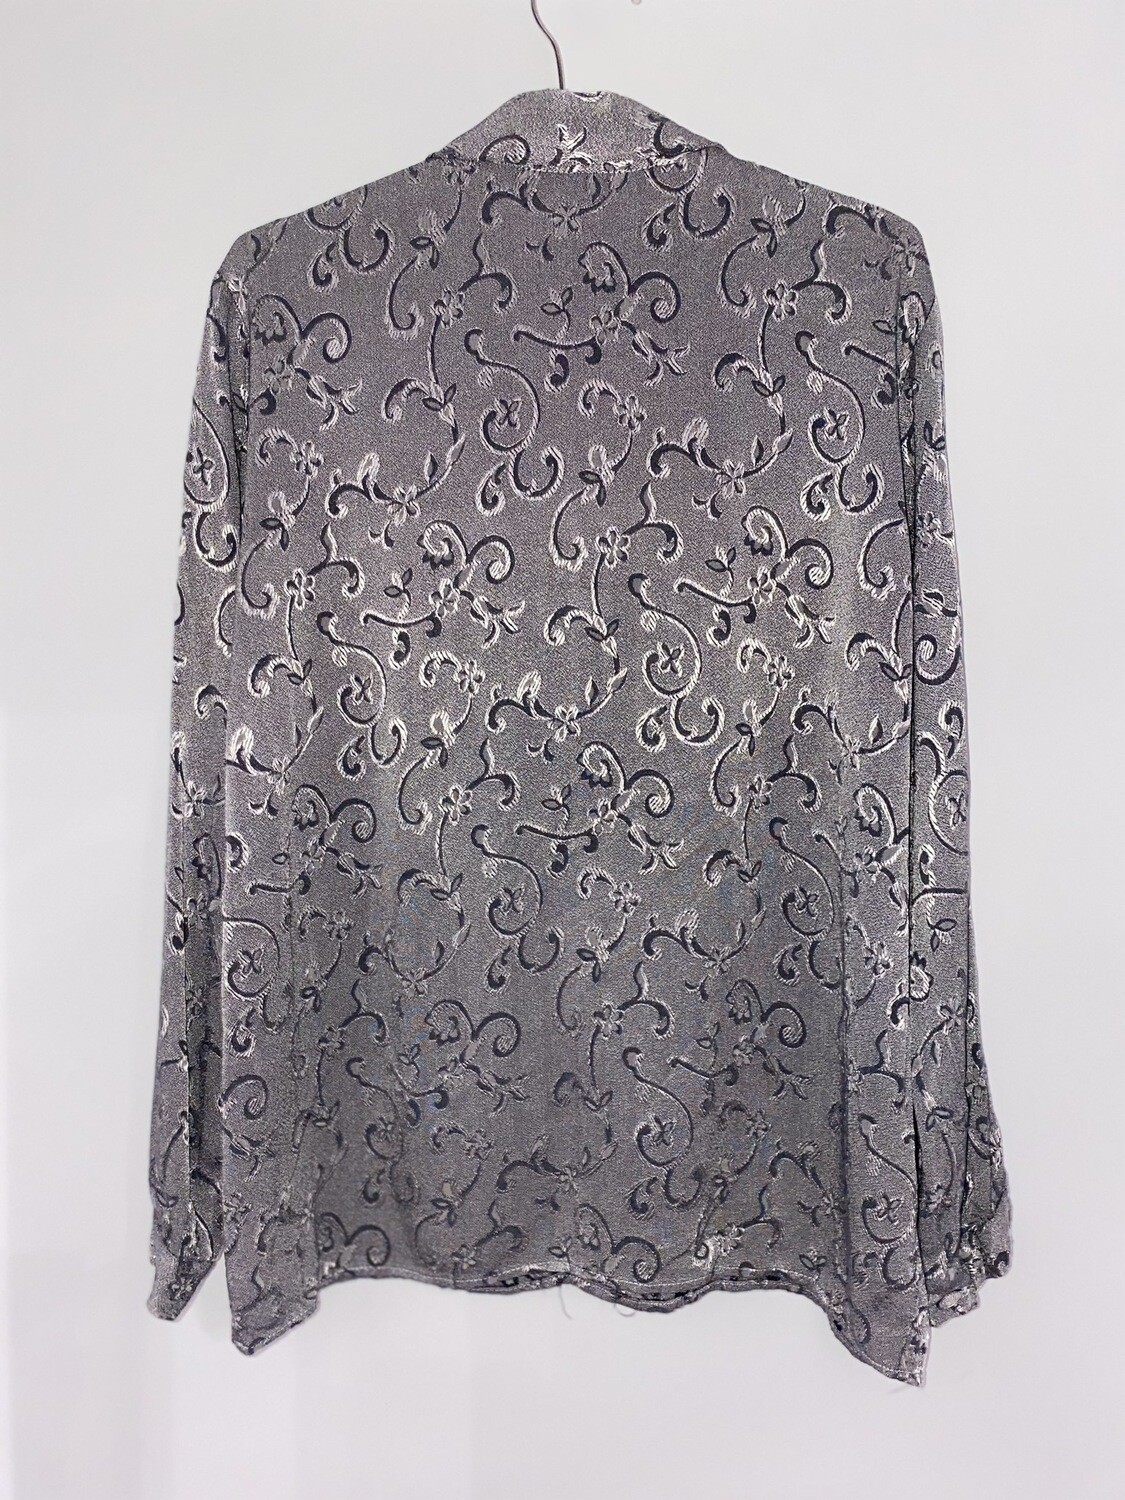 Shiny Grey Floral Print Button Up Size M